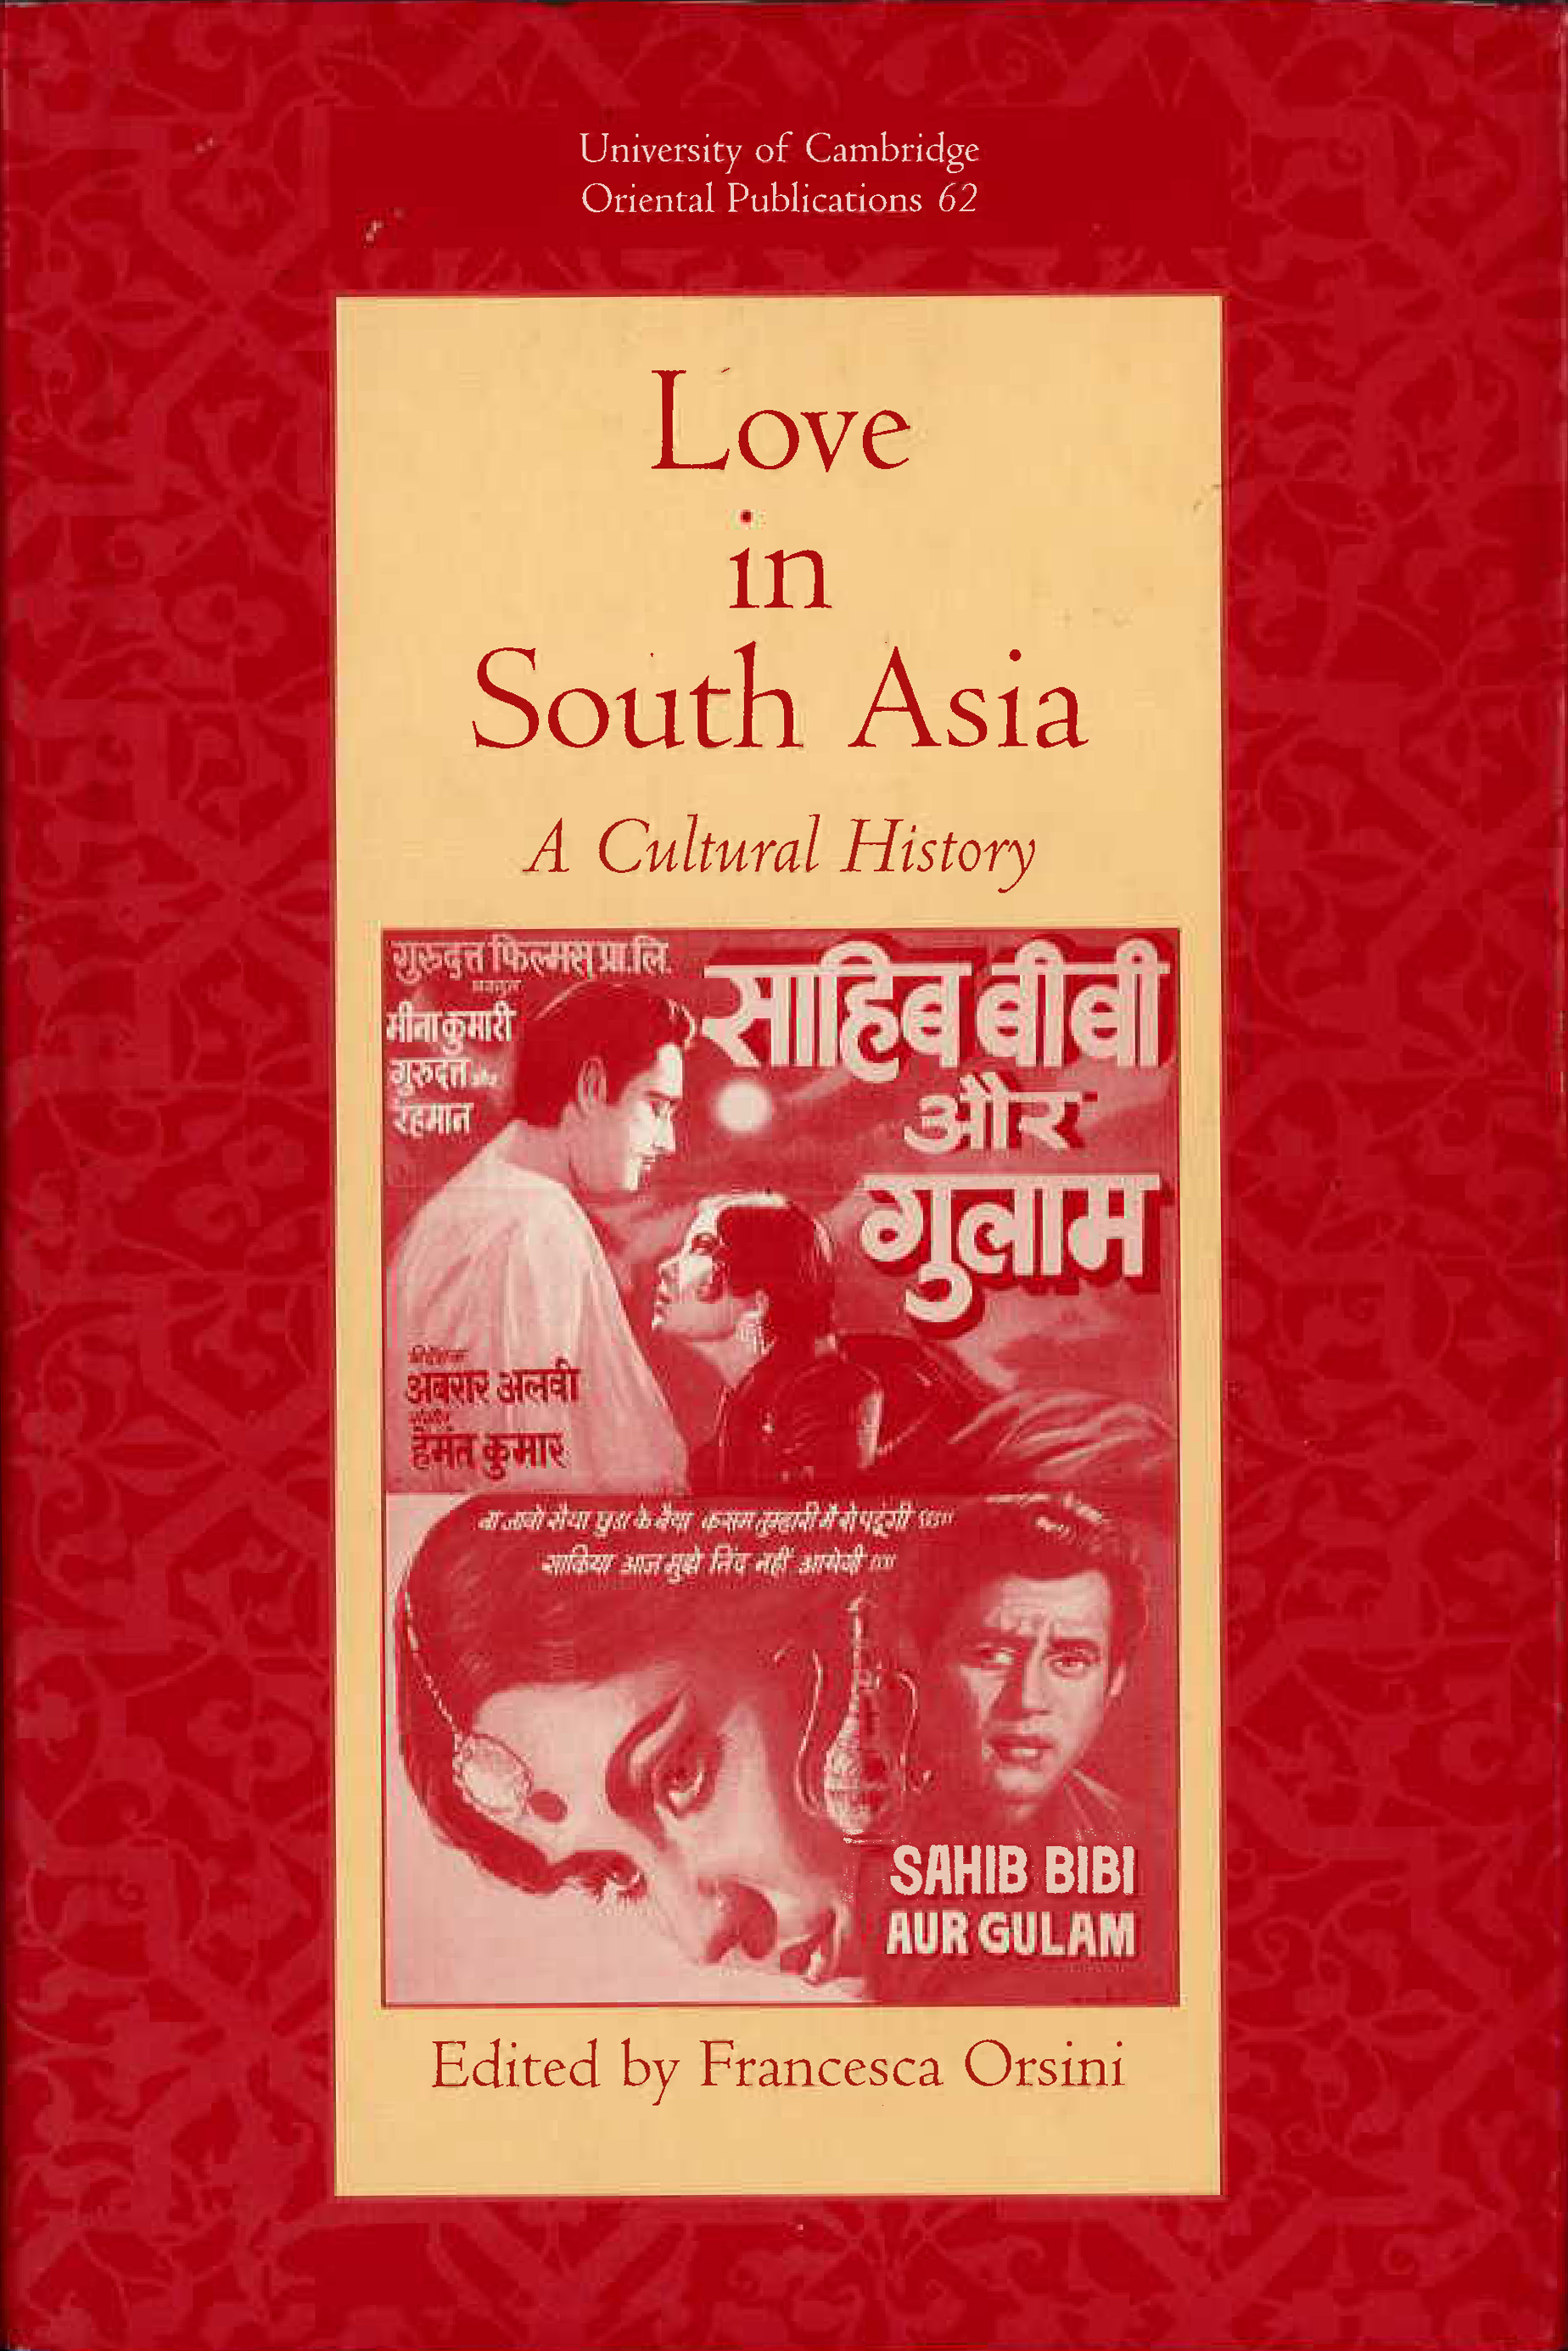 Love in South Asia: A Cultural History